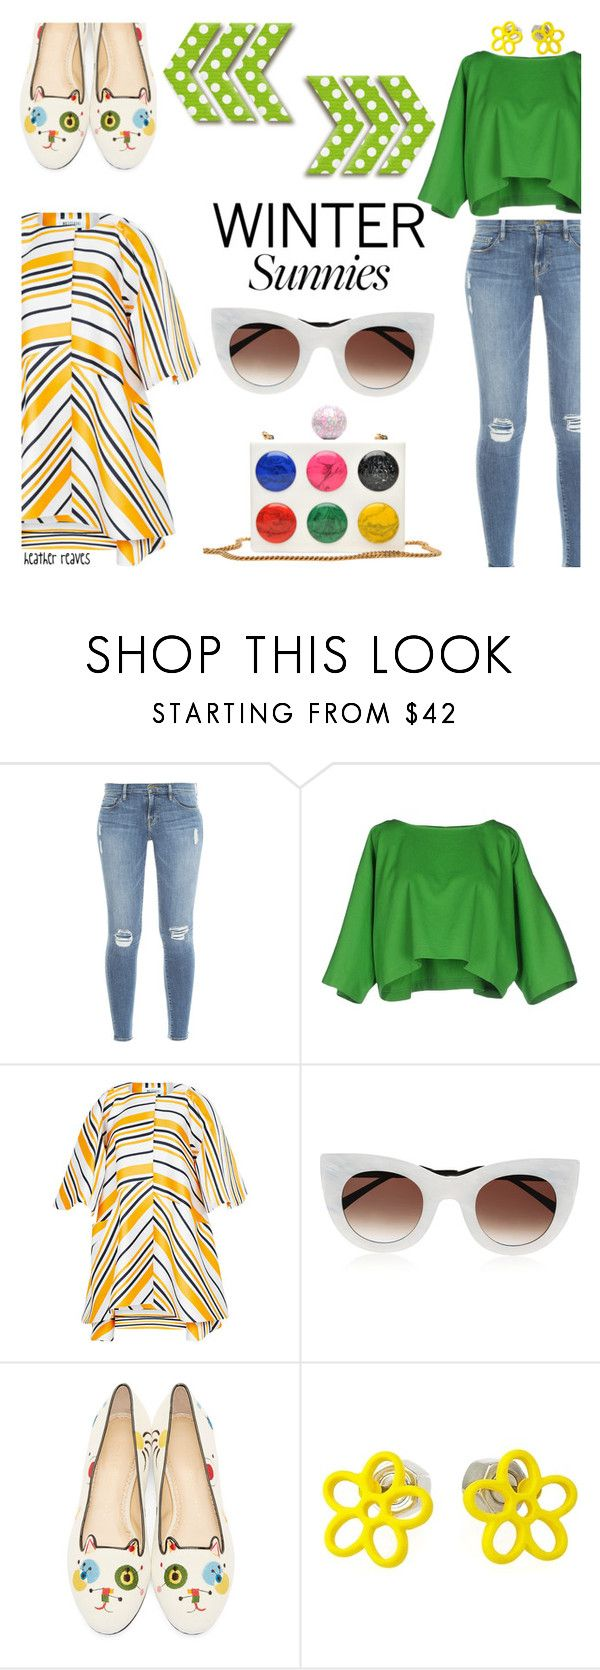 """Let the Sun Shine"" by heather-reaves ❤ liked on Polyvore featuring Frame Denim, Maison About, Maticevski, Thierry Lasry, Charlotte Olympia, Marc by Marc Jacobs and wintersunnies"